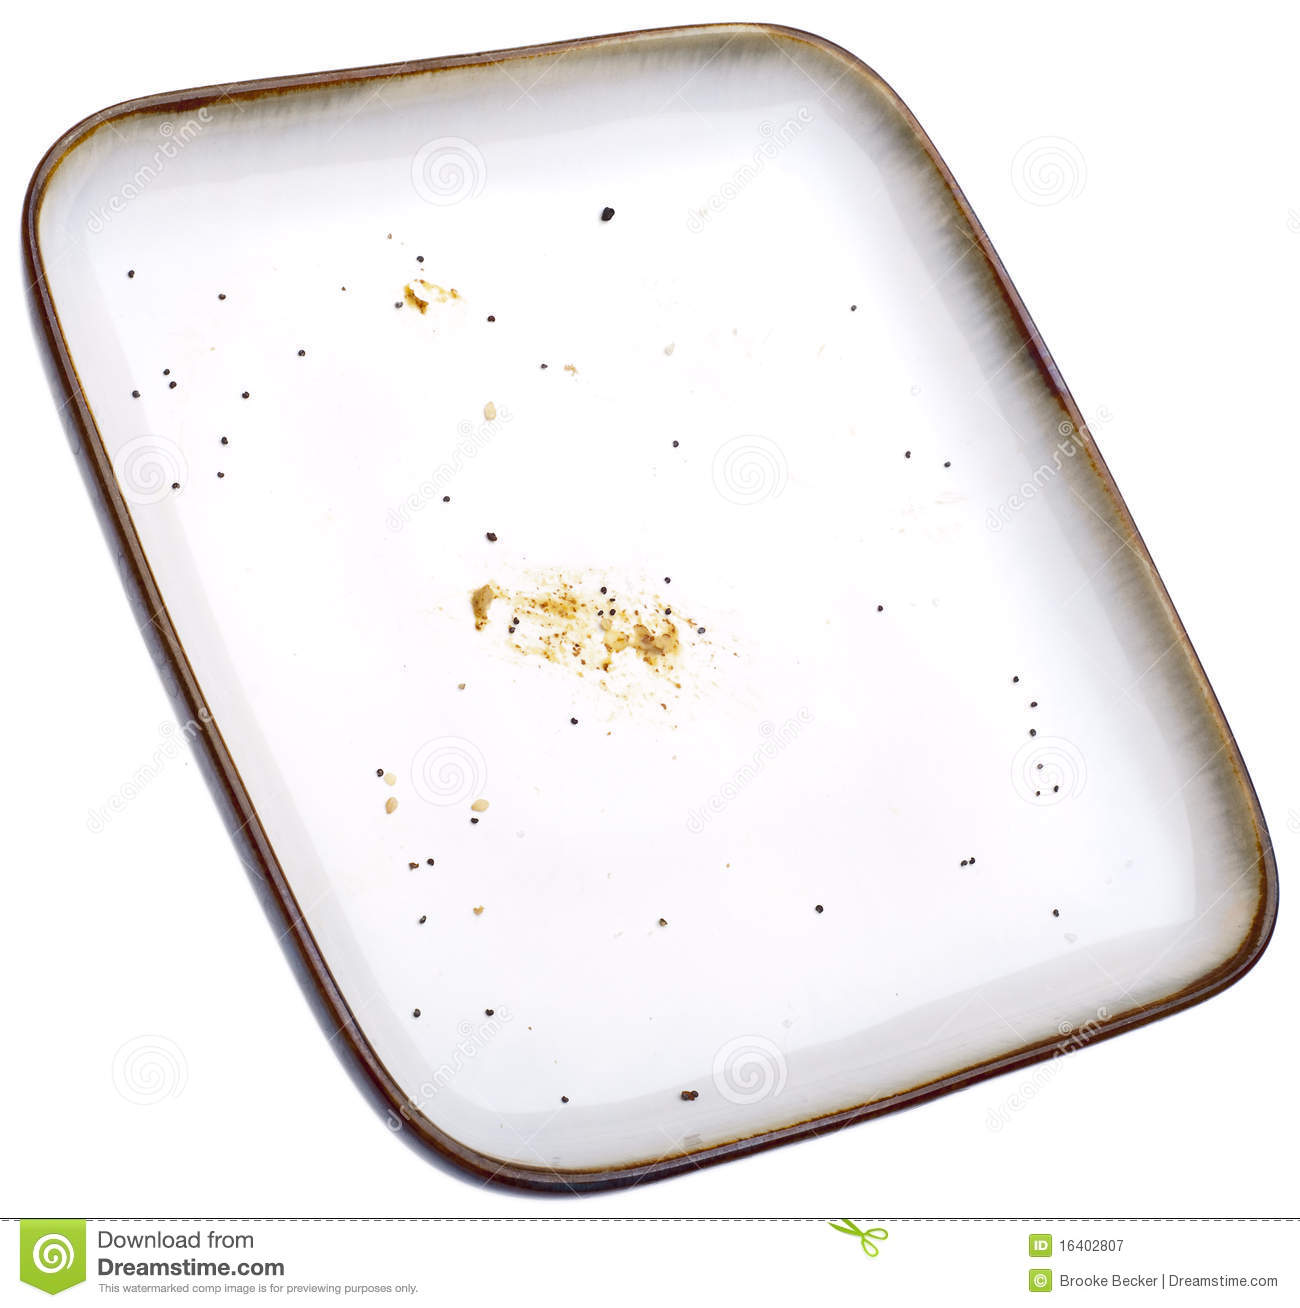 Crumbs Empty Plate Stock Illustrations – 5 Crumbs Empty Plate Stock Illustrations, Vectors ... |Empty Plate With Crumbs Clipart